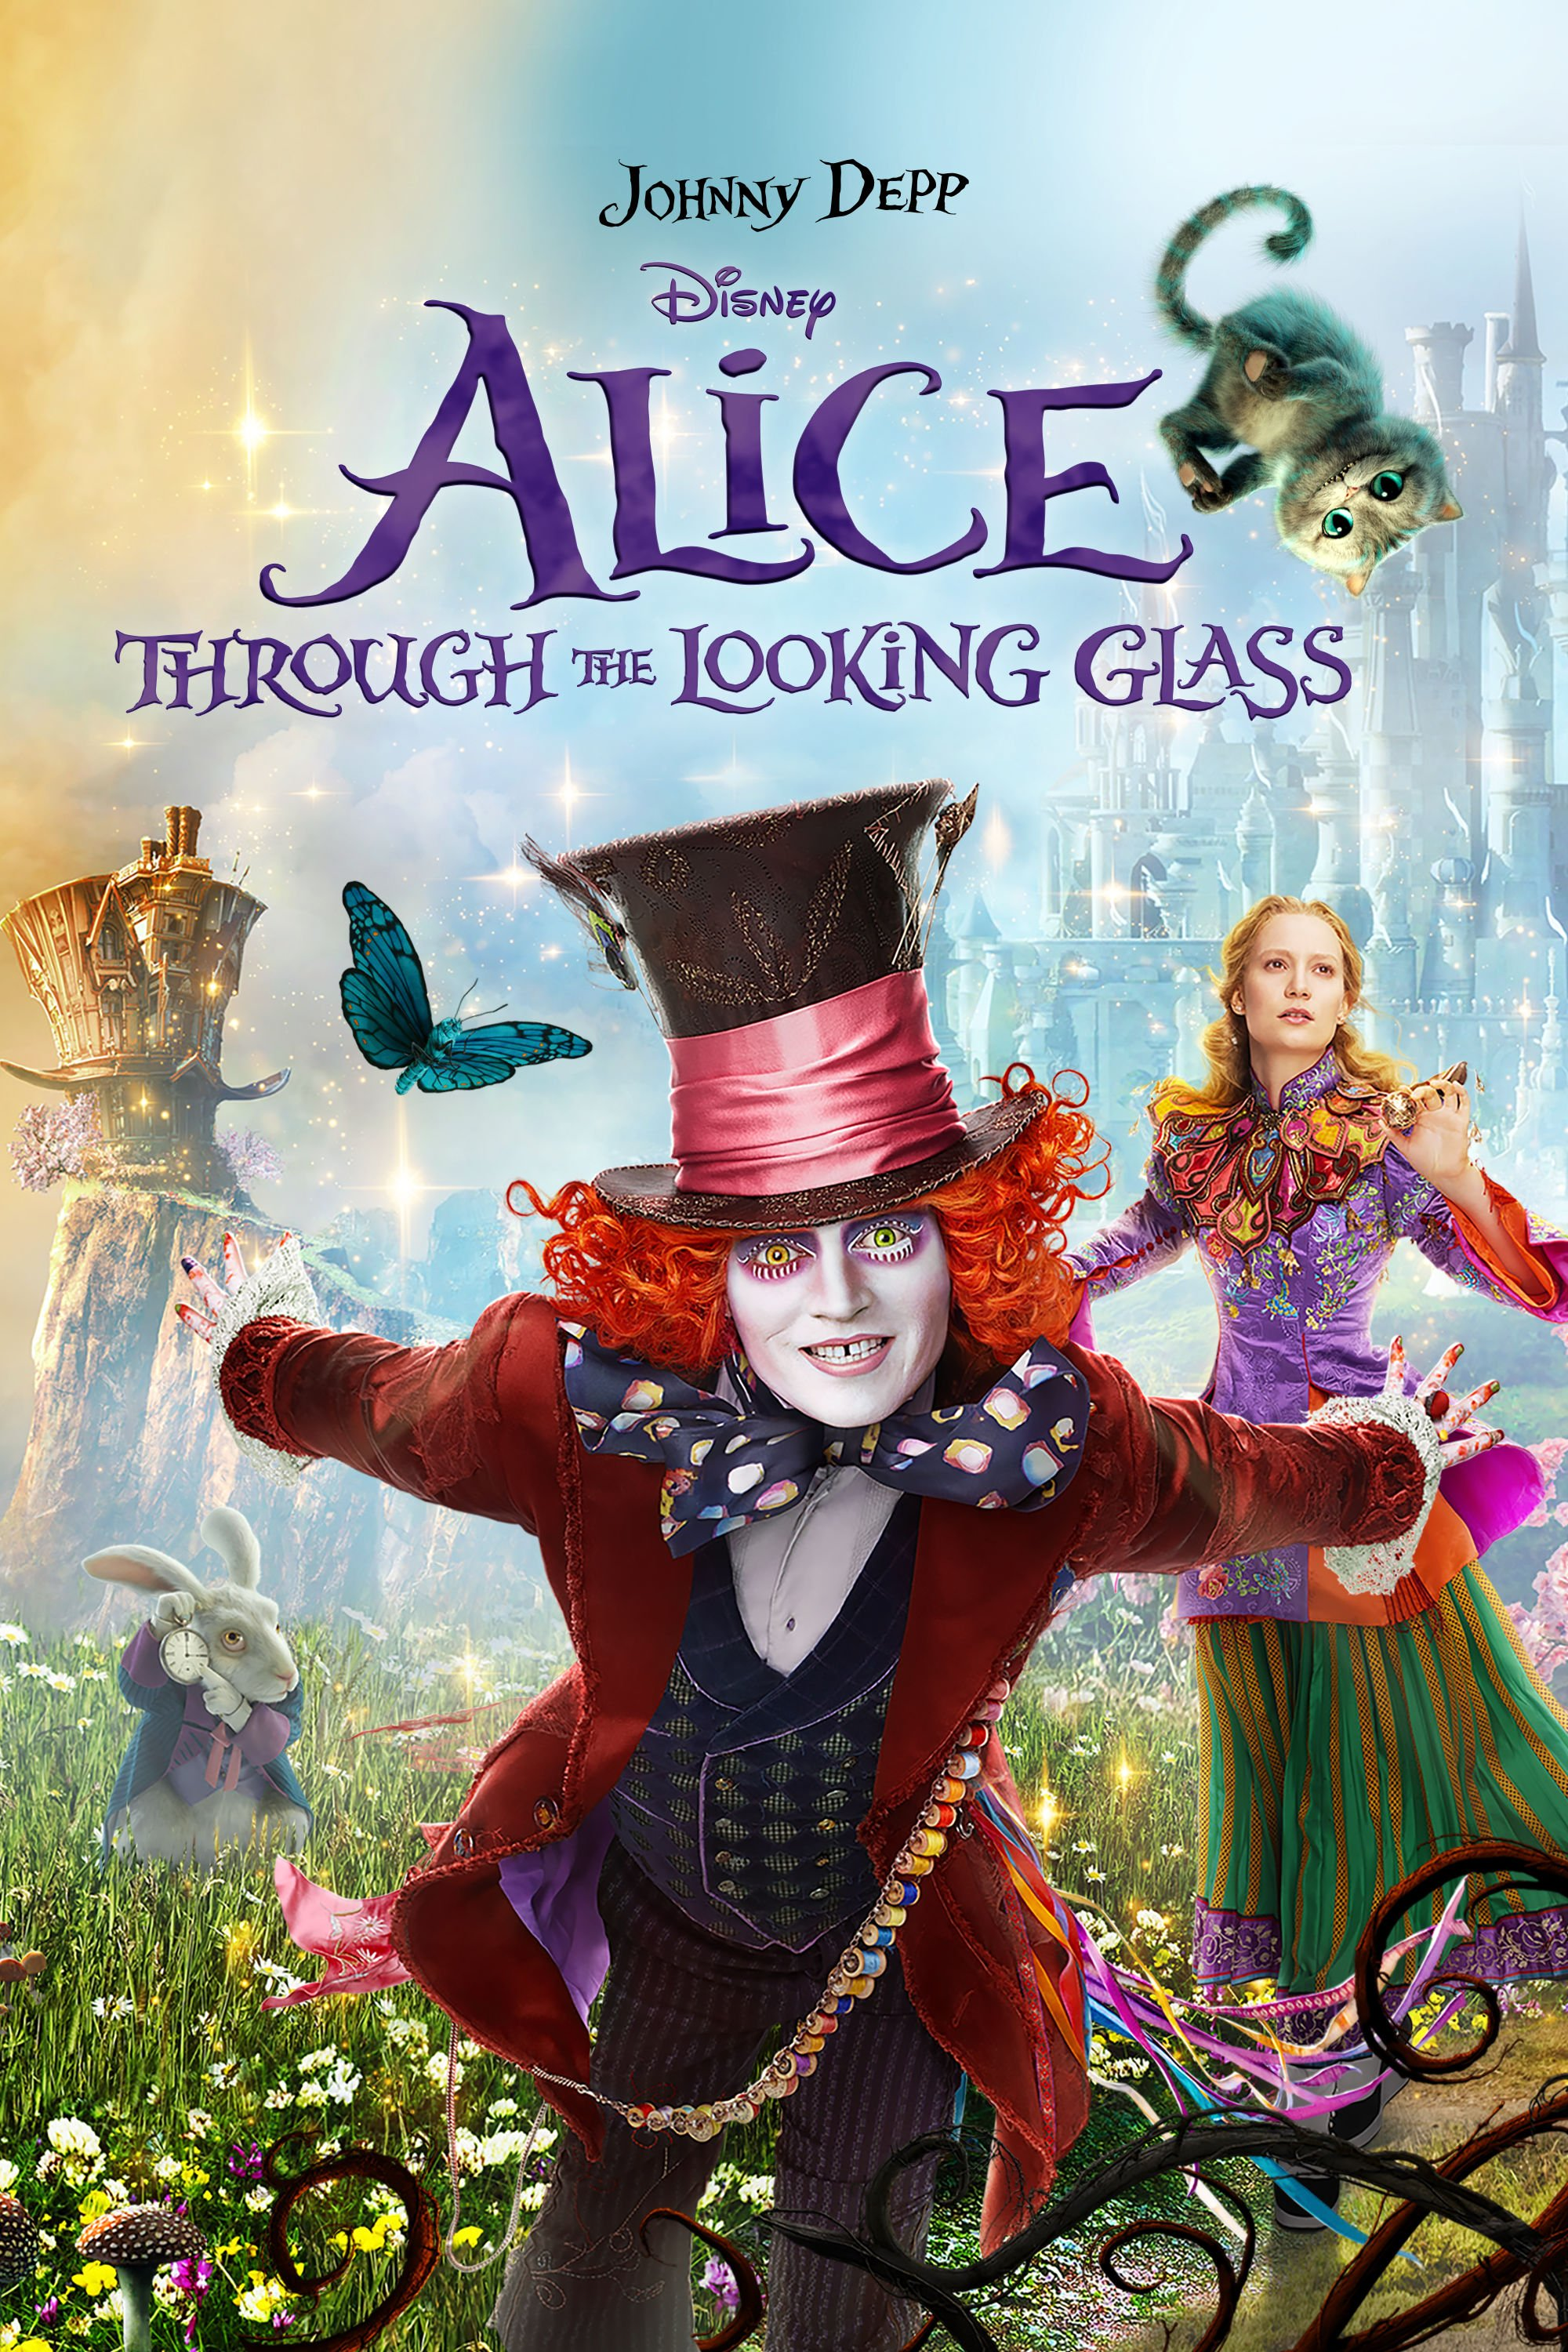 alice-through-the-looking-glass-filming-locations-itunes-poster